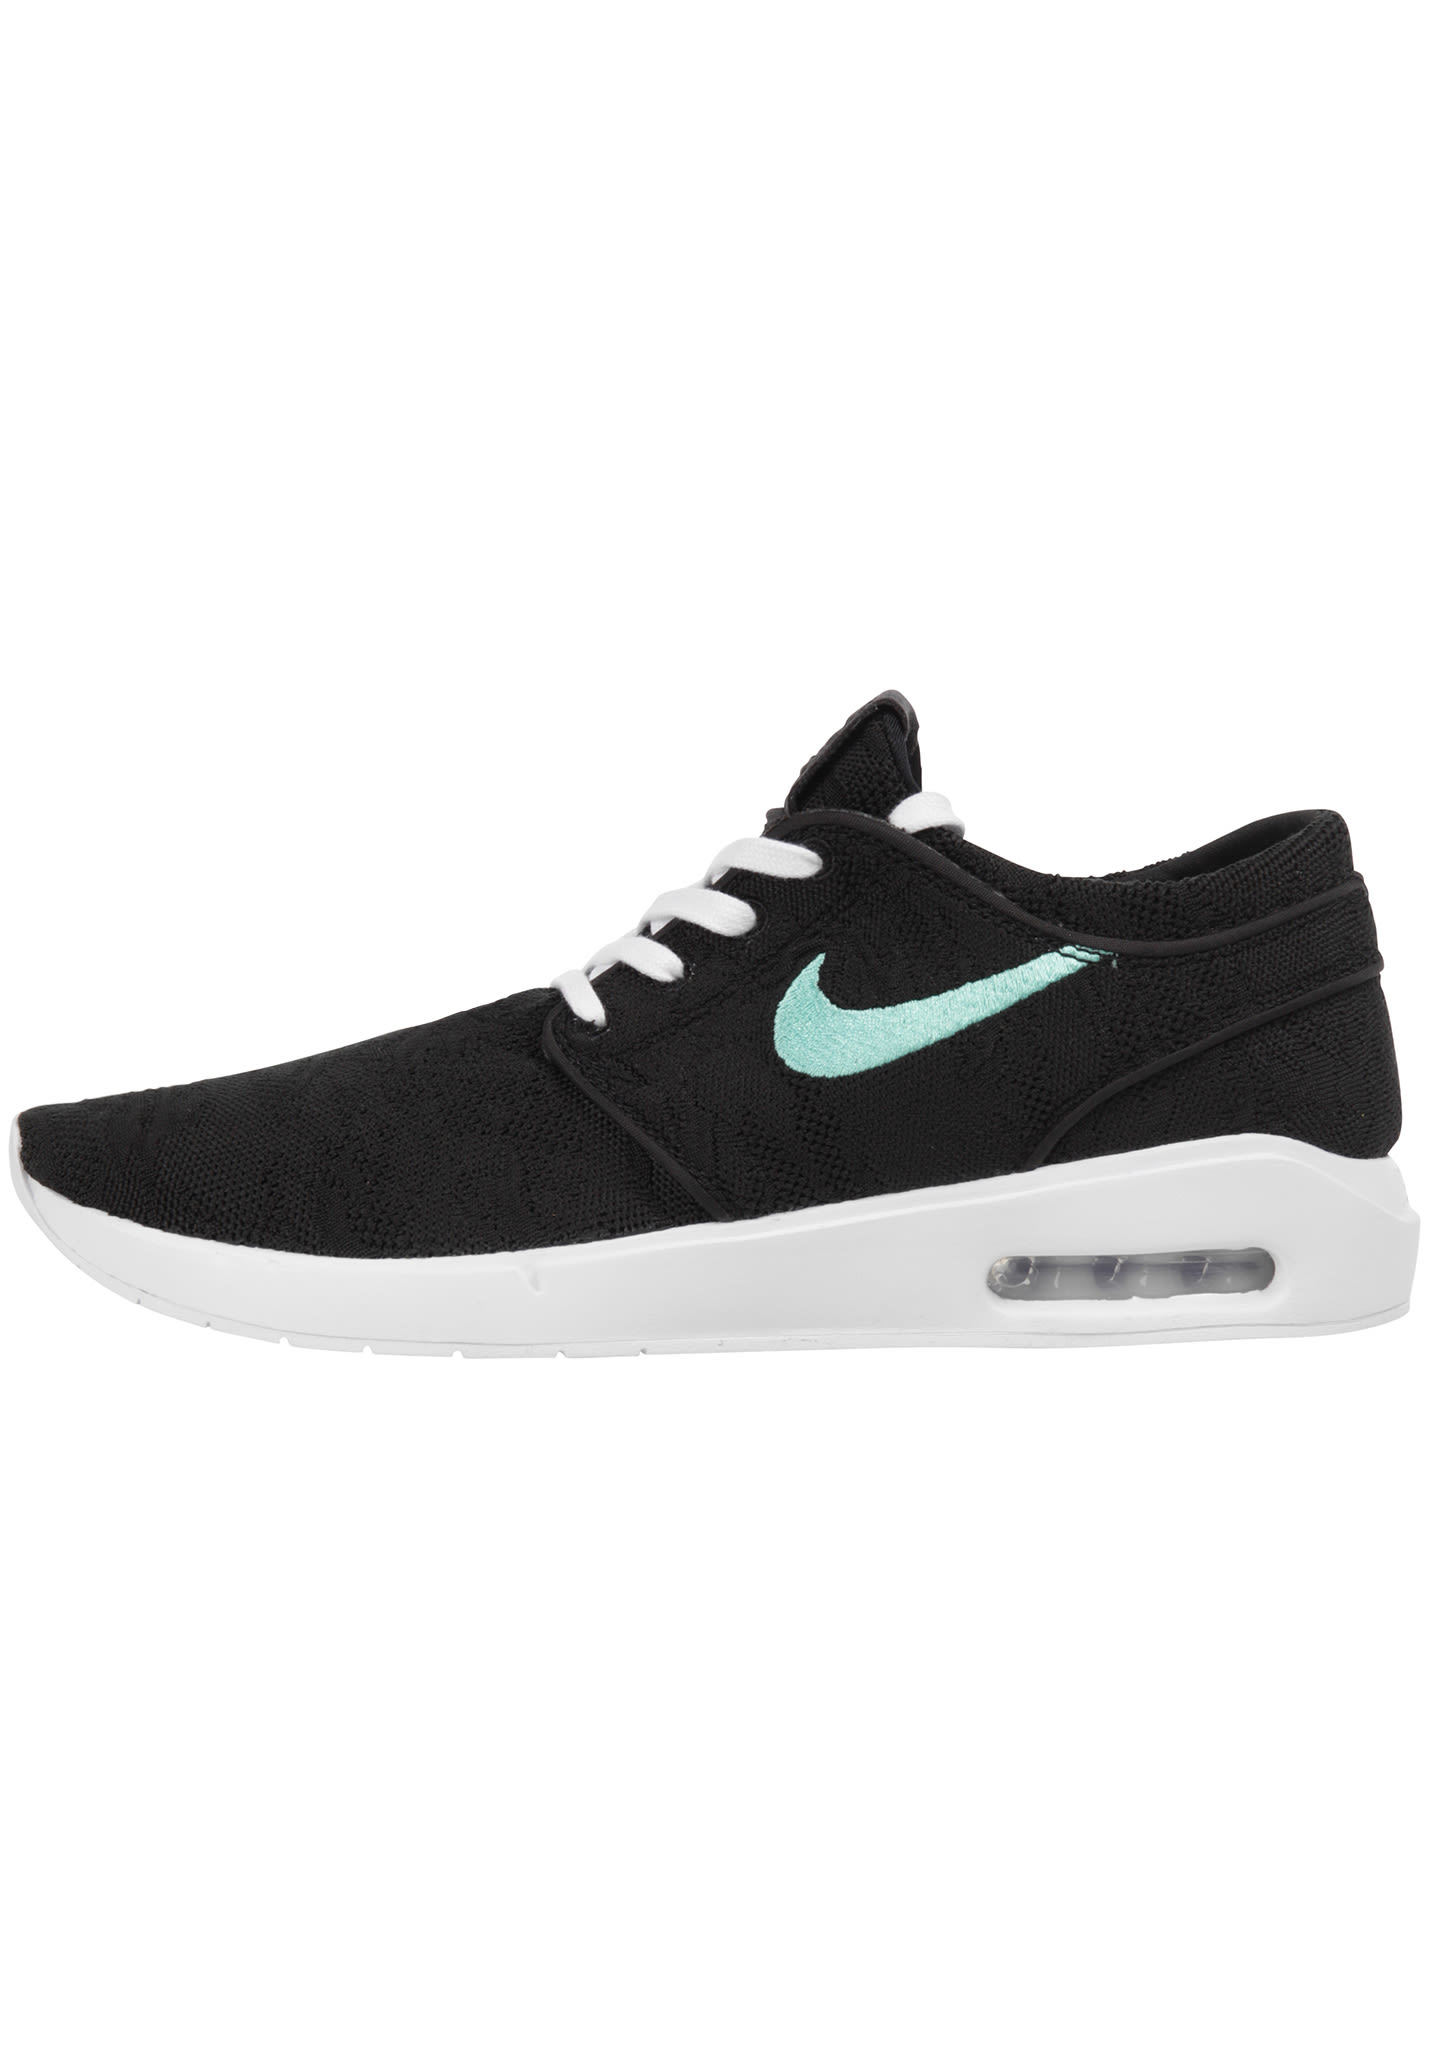 official photos e6b53 81889 NIKE SB Air Max Janoski 2 - Sneakers for Men - Black - Planet Sports